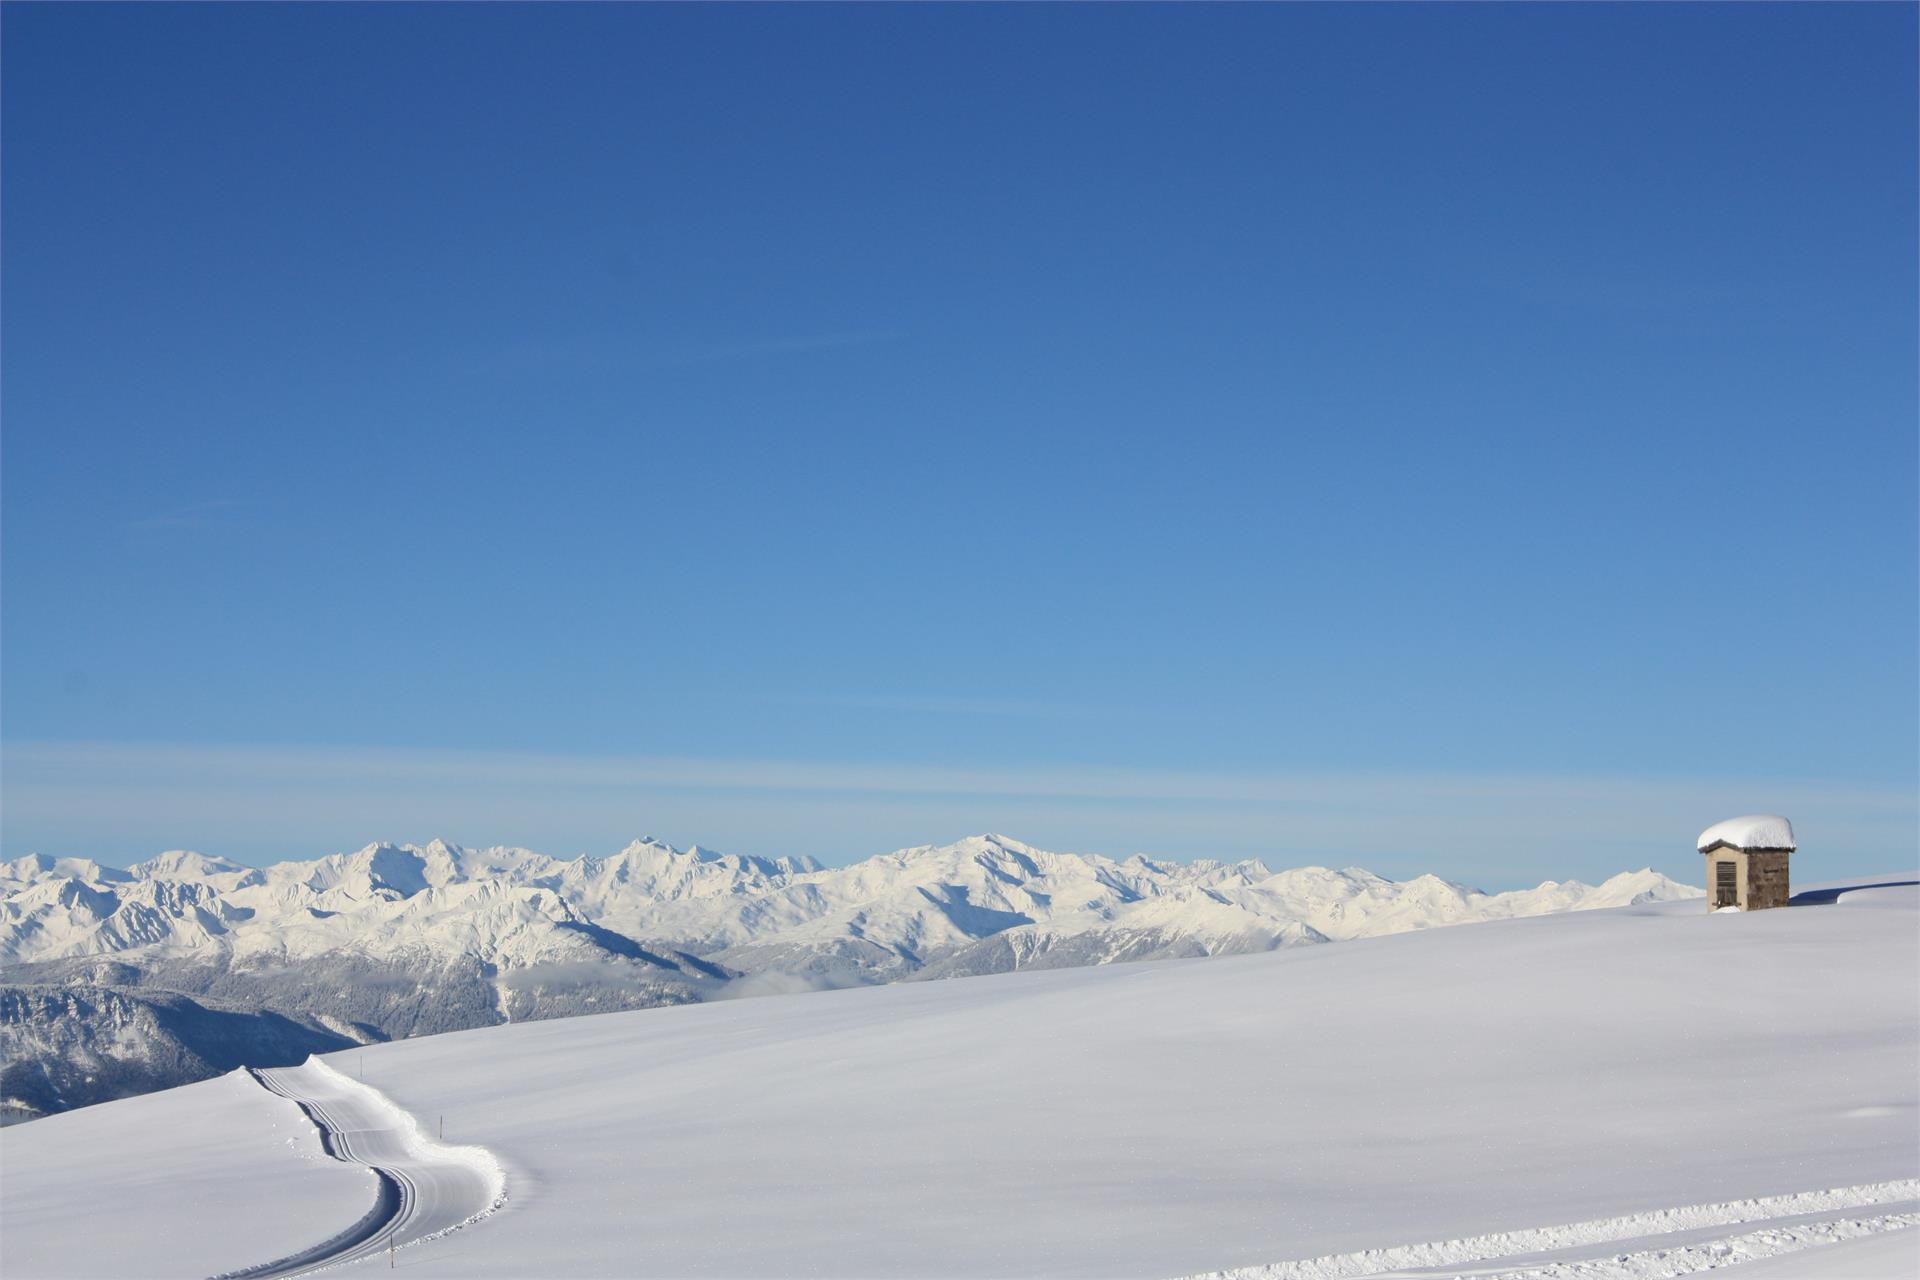 Rittner Horn High-Altitude Cross Country Skiing Trail